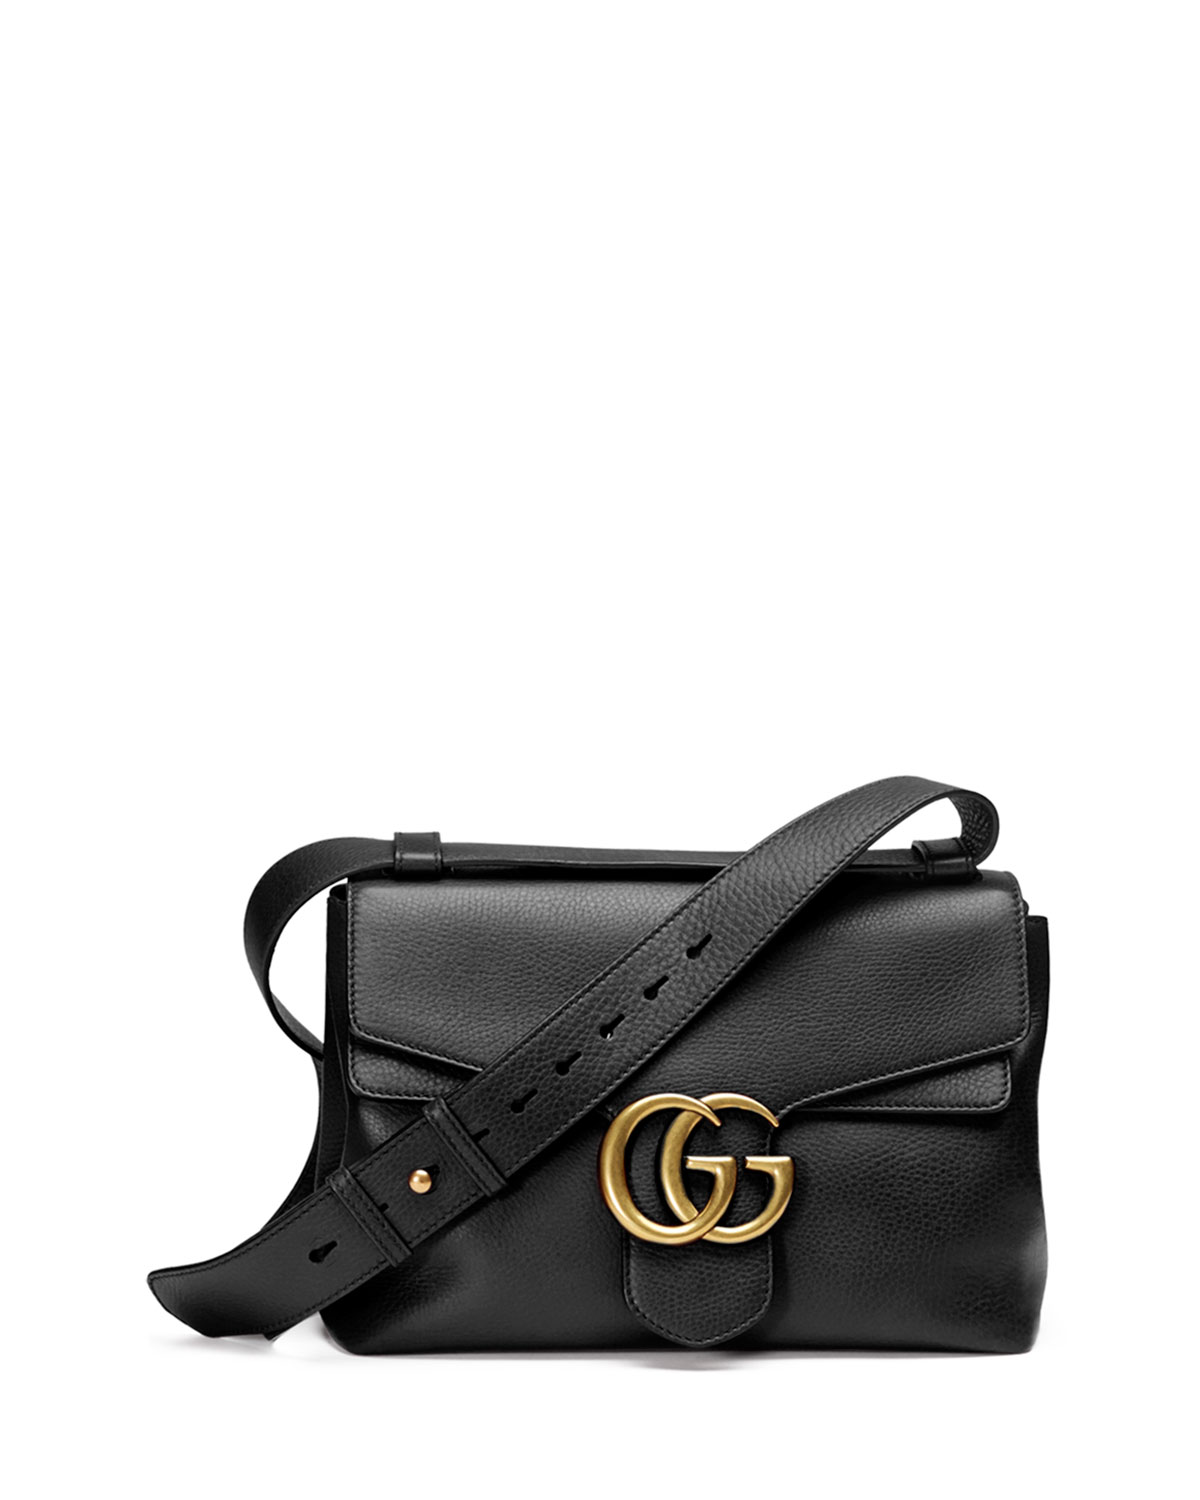 92b9d9b67 Gucci GG Marmont Medium Leather Shoulder Bag, Black | Neiman Marcus